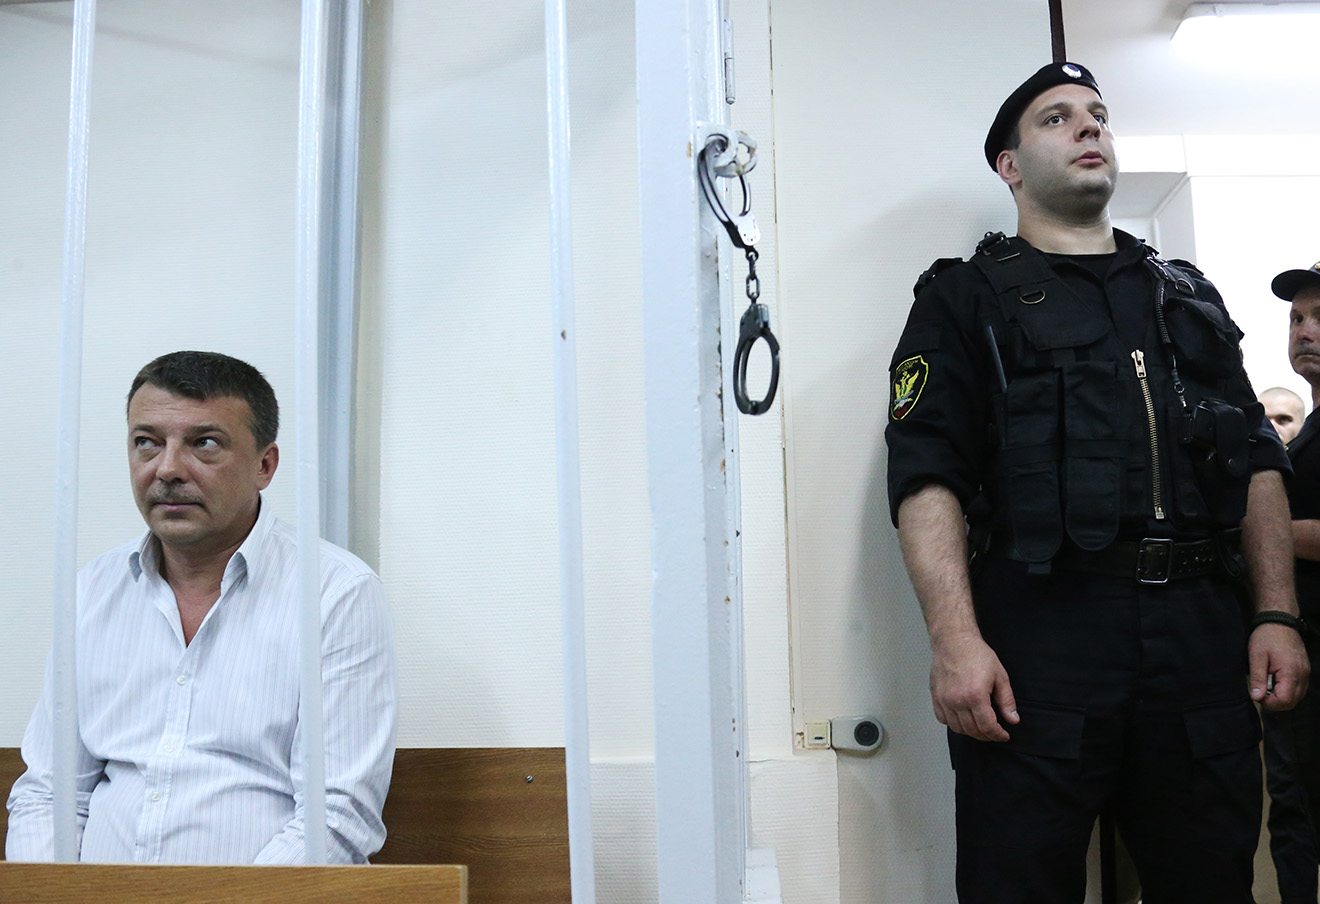 At_the_trial_in_the_case_of_osobist_SK_Maksimenko_sensational_testimony_sounded